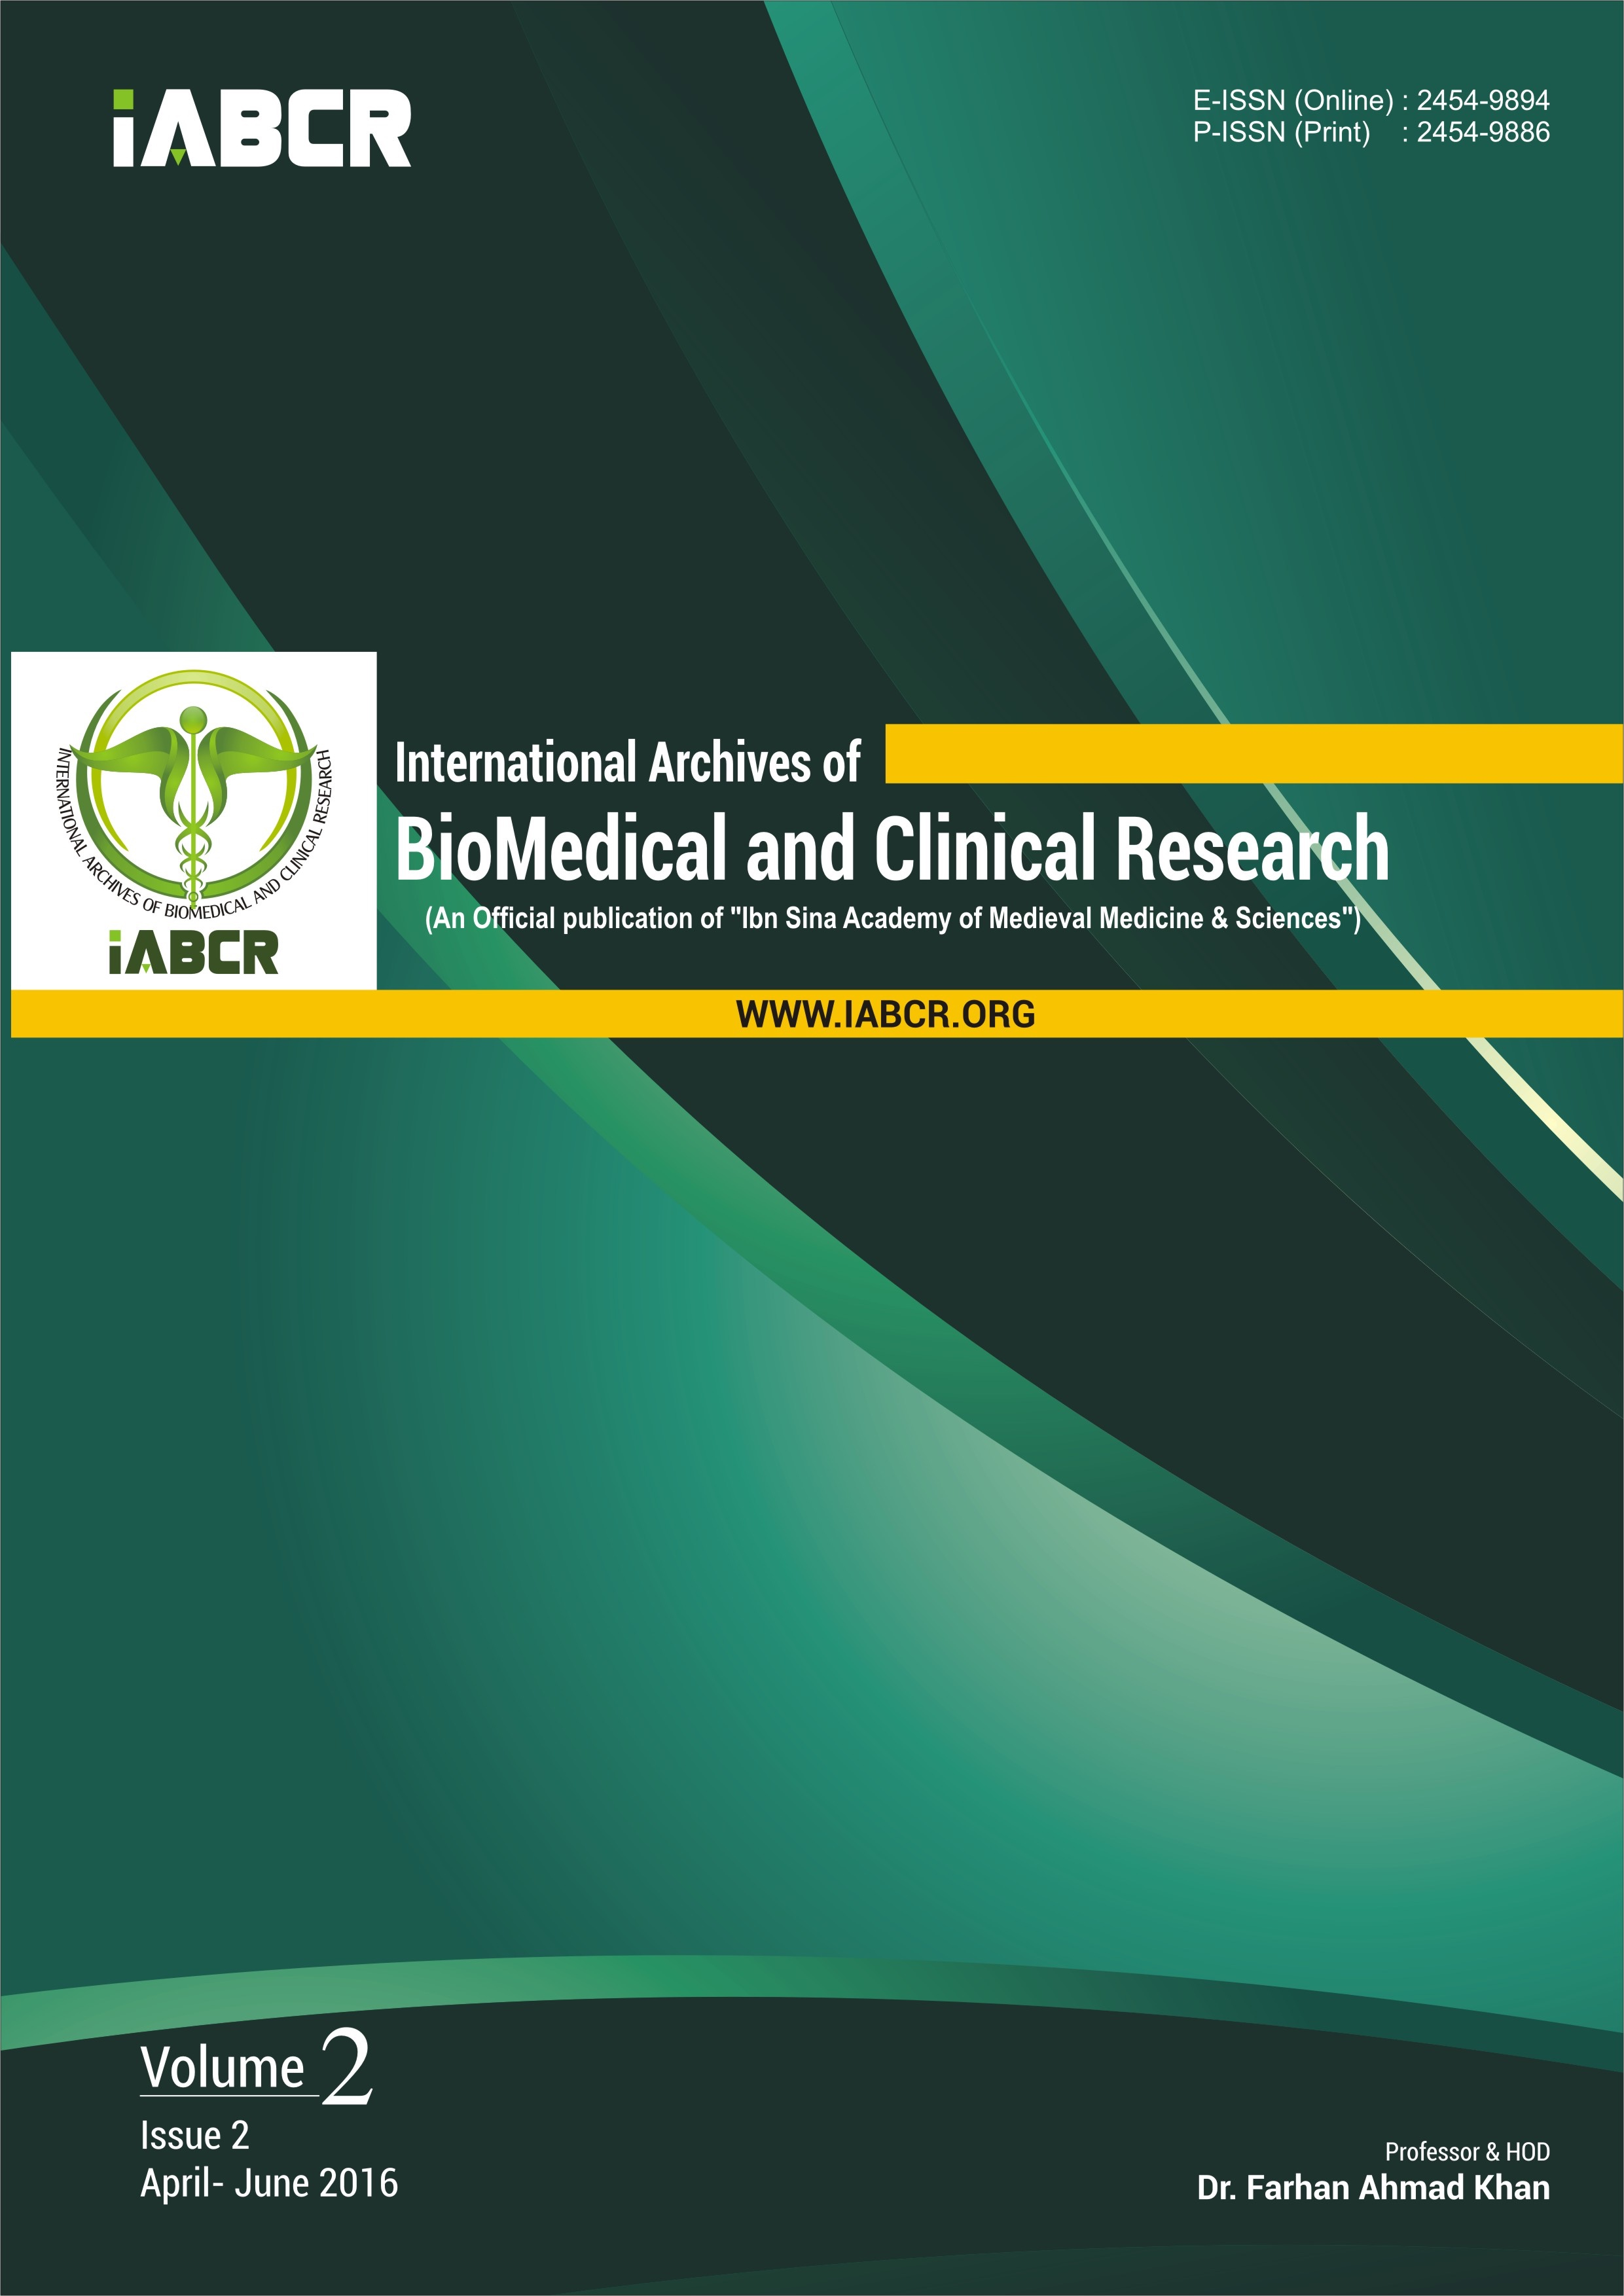 Biomedical and Clinical Research